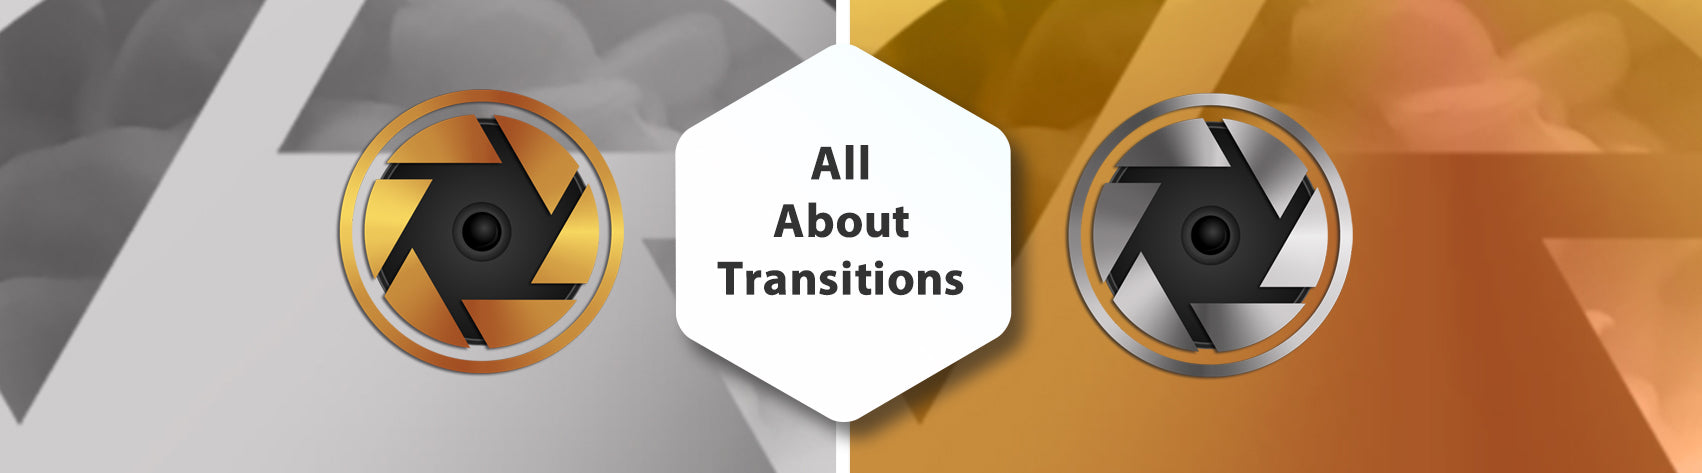 All About Transitions in Photopia